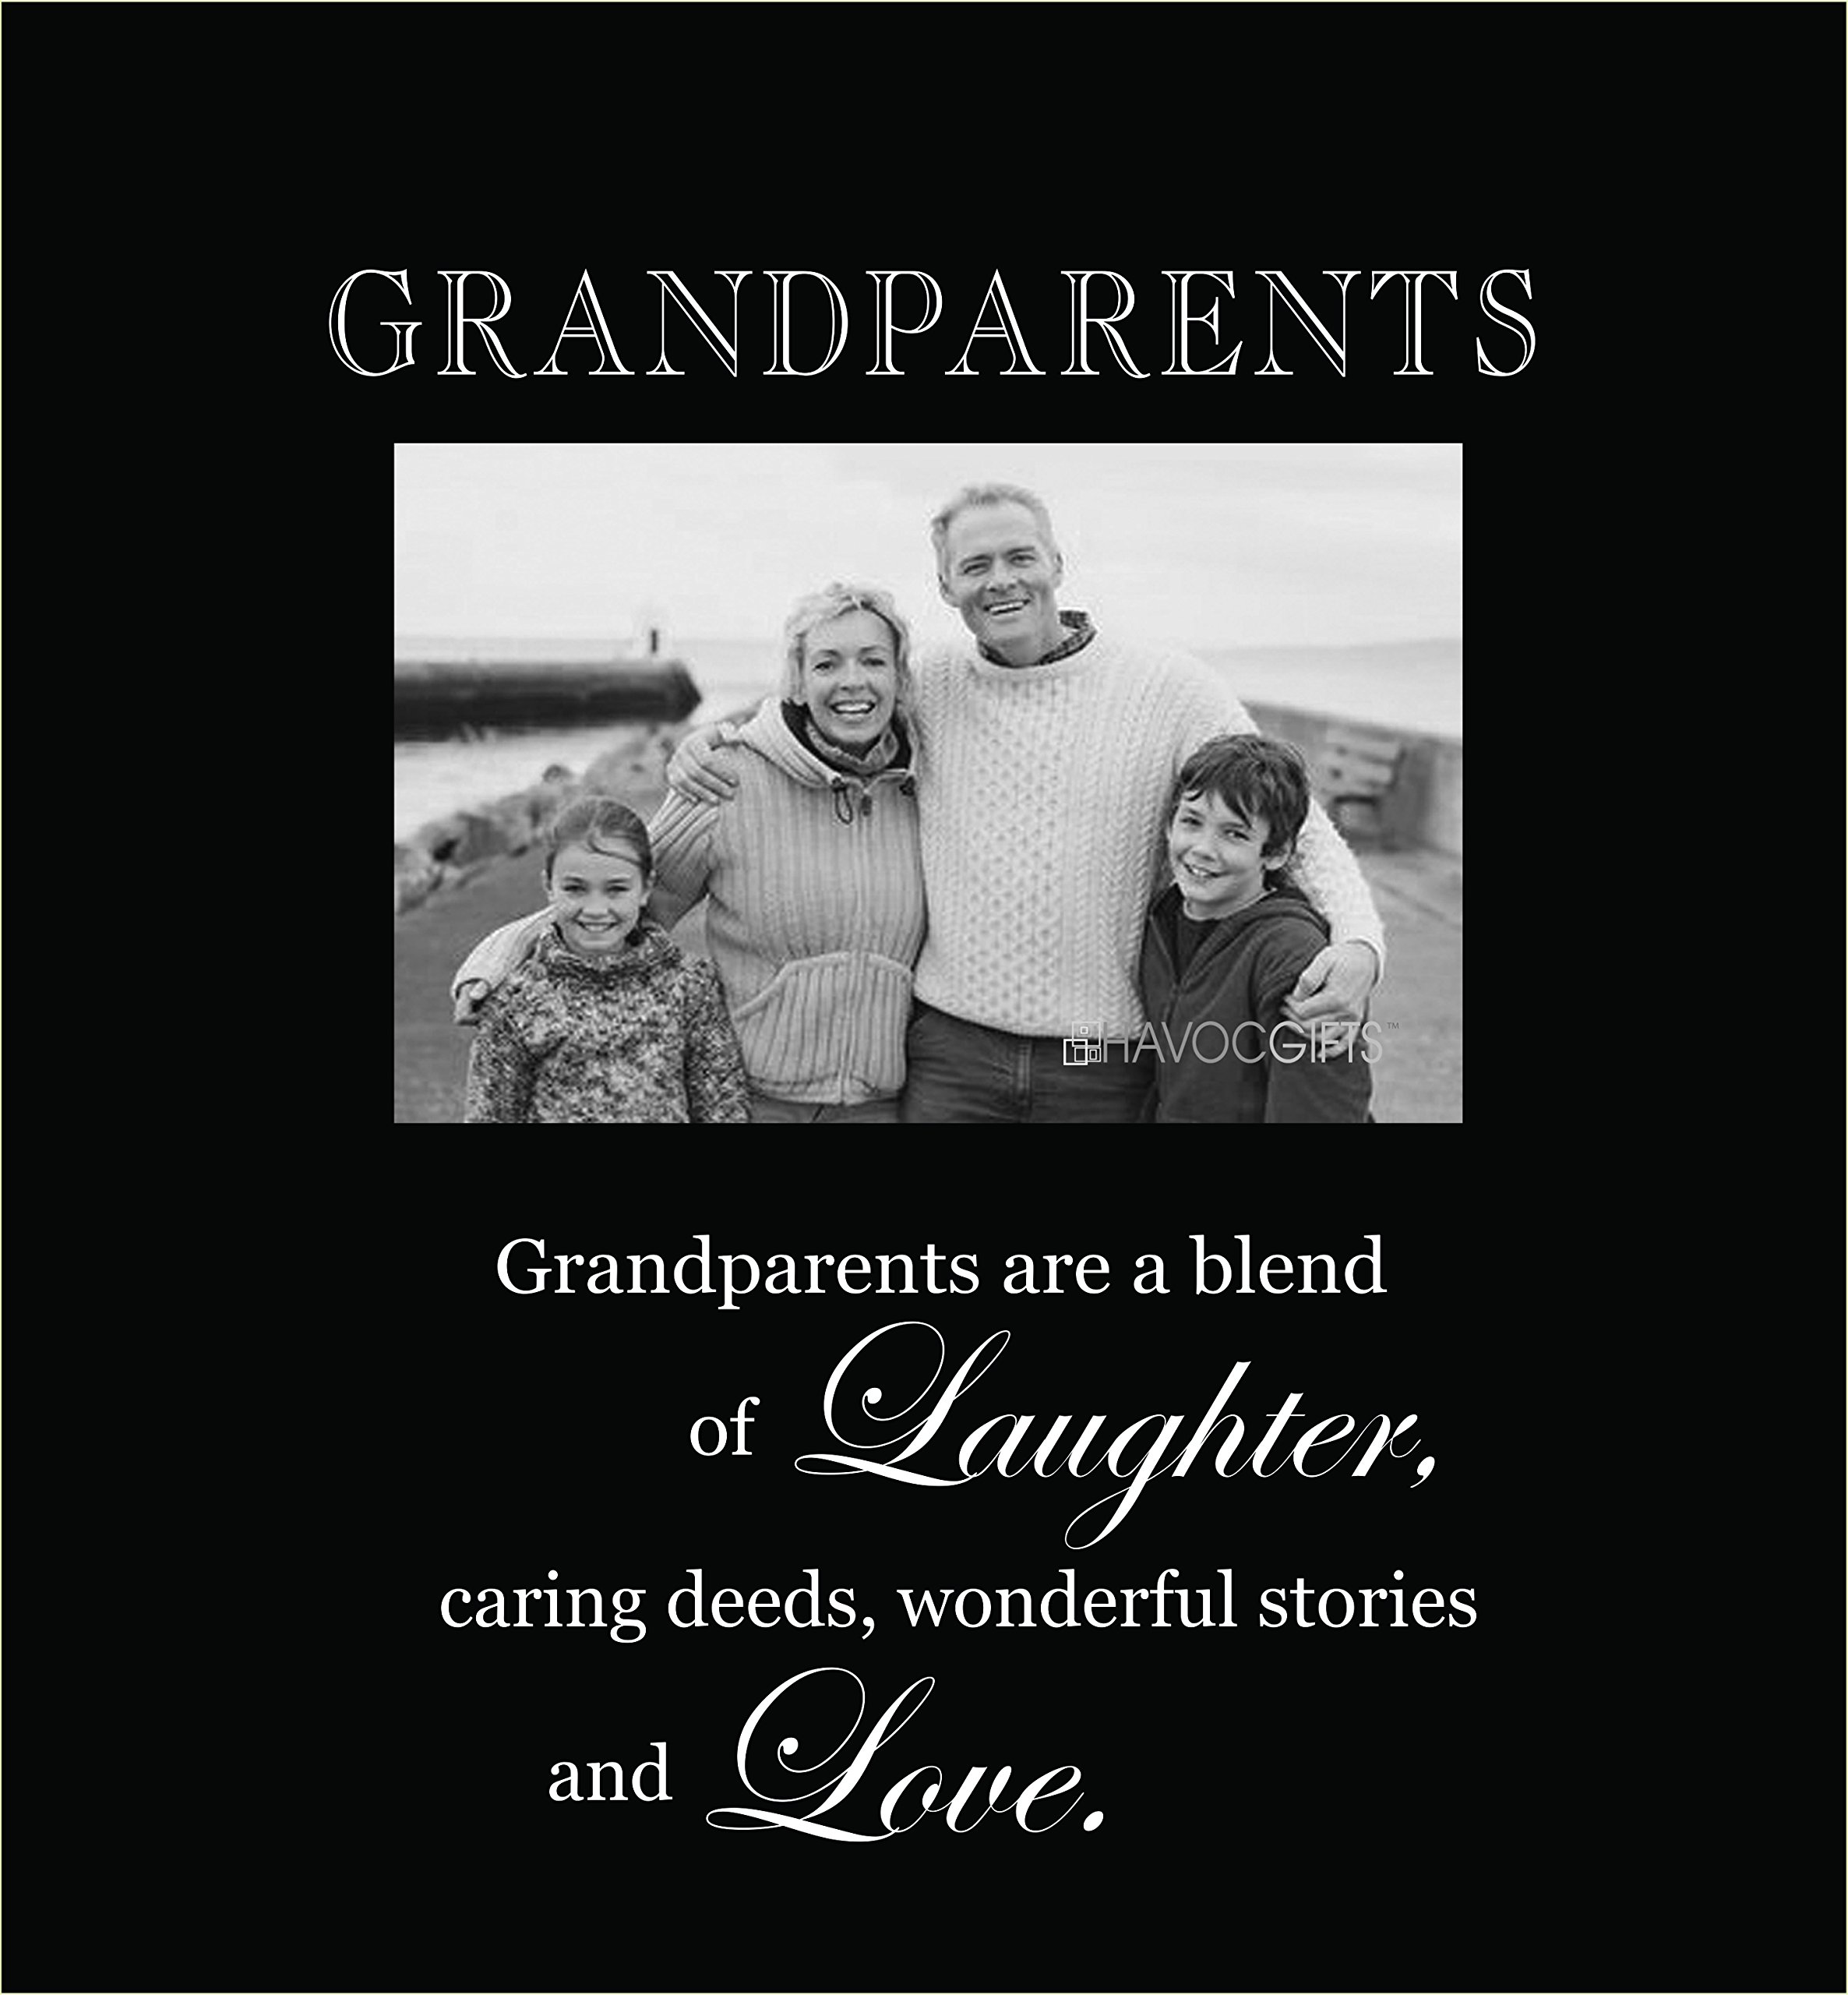 Infusion Gifts 3003-LB Grandparents Engraved Photo Frames, Large, Black by Infusion Gifts